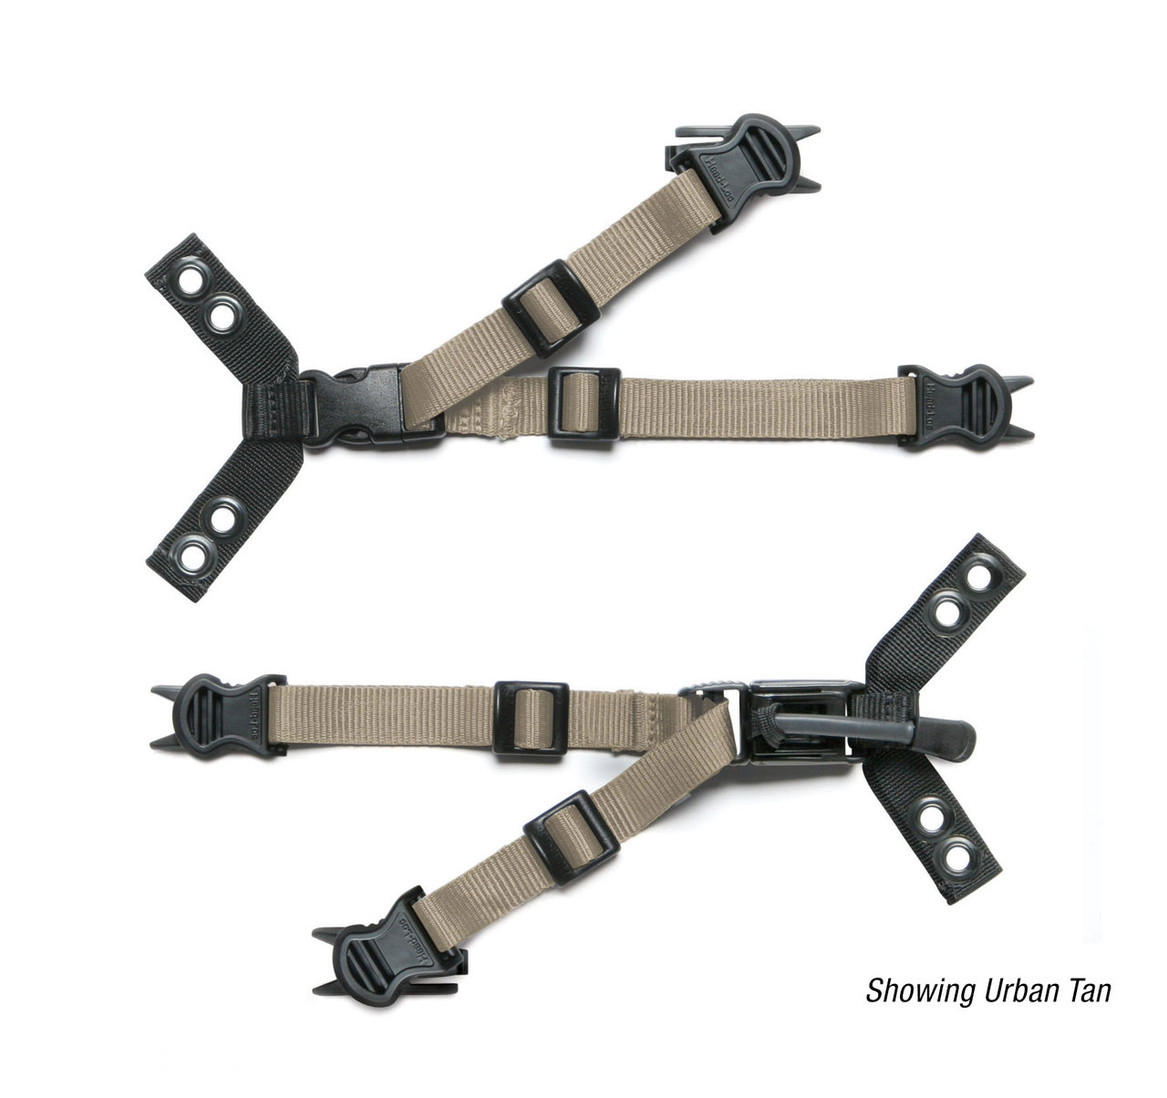 FAST & ACH O2 MASK DOUBLE-STRAP KIT